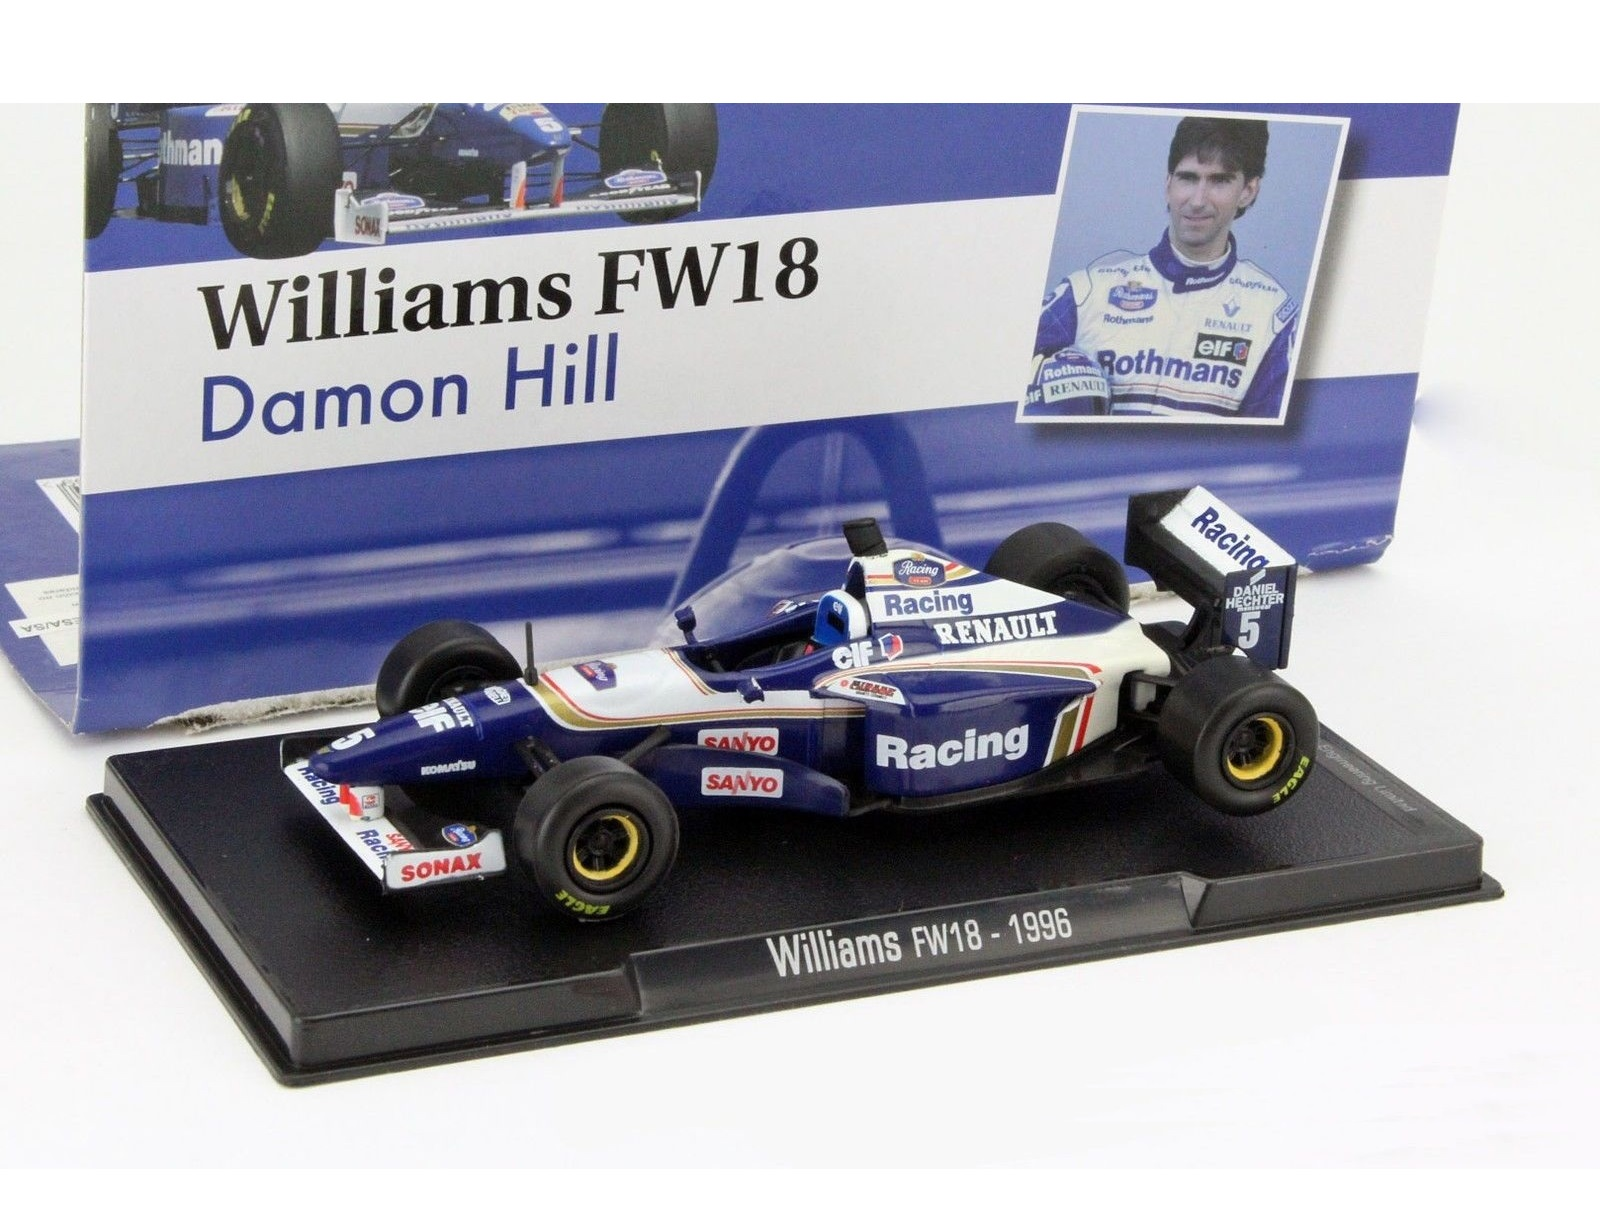 43_Damon_Hill_Williams_FW18_a